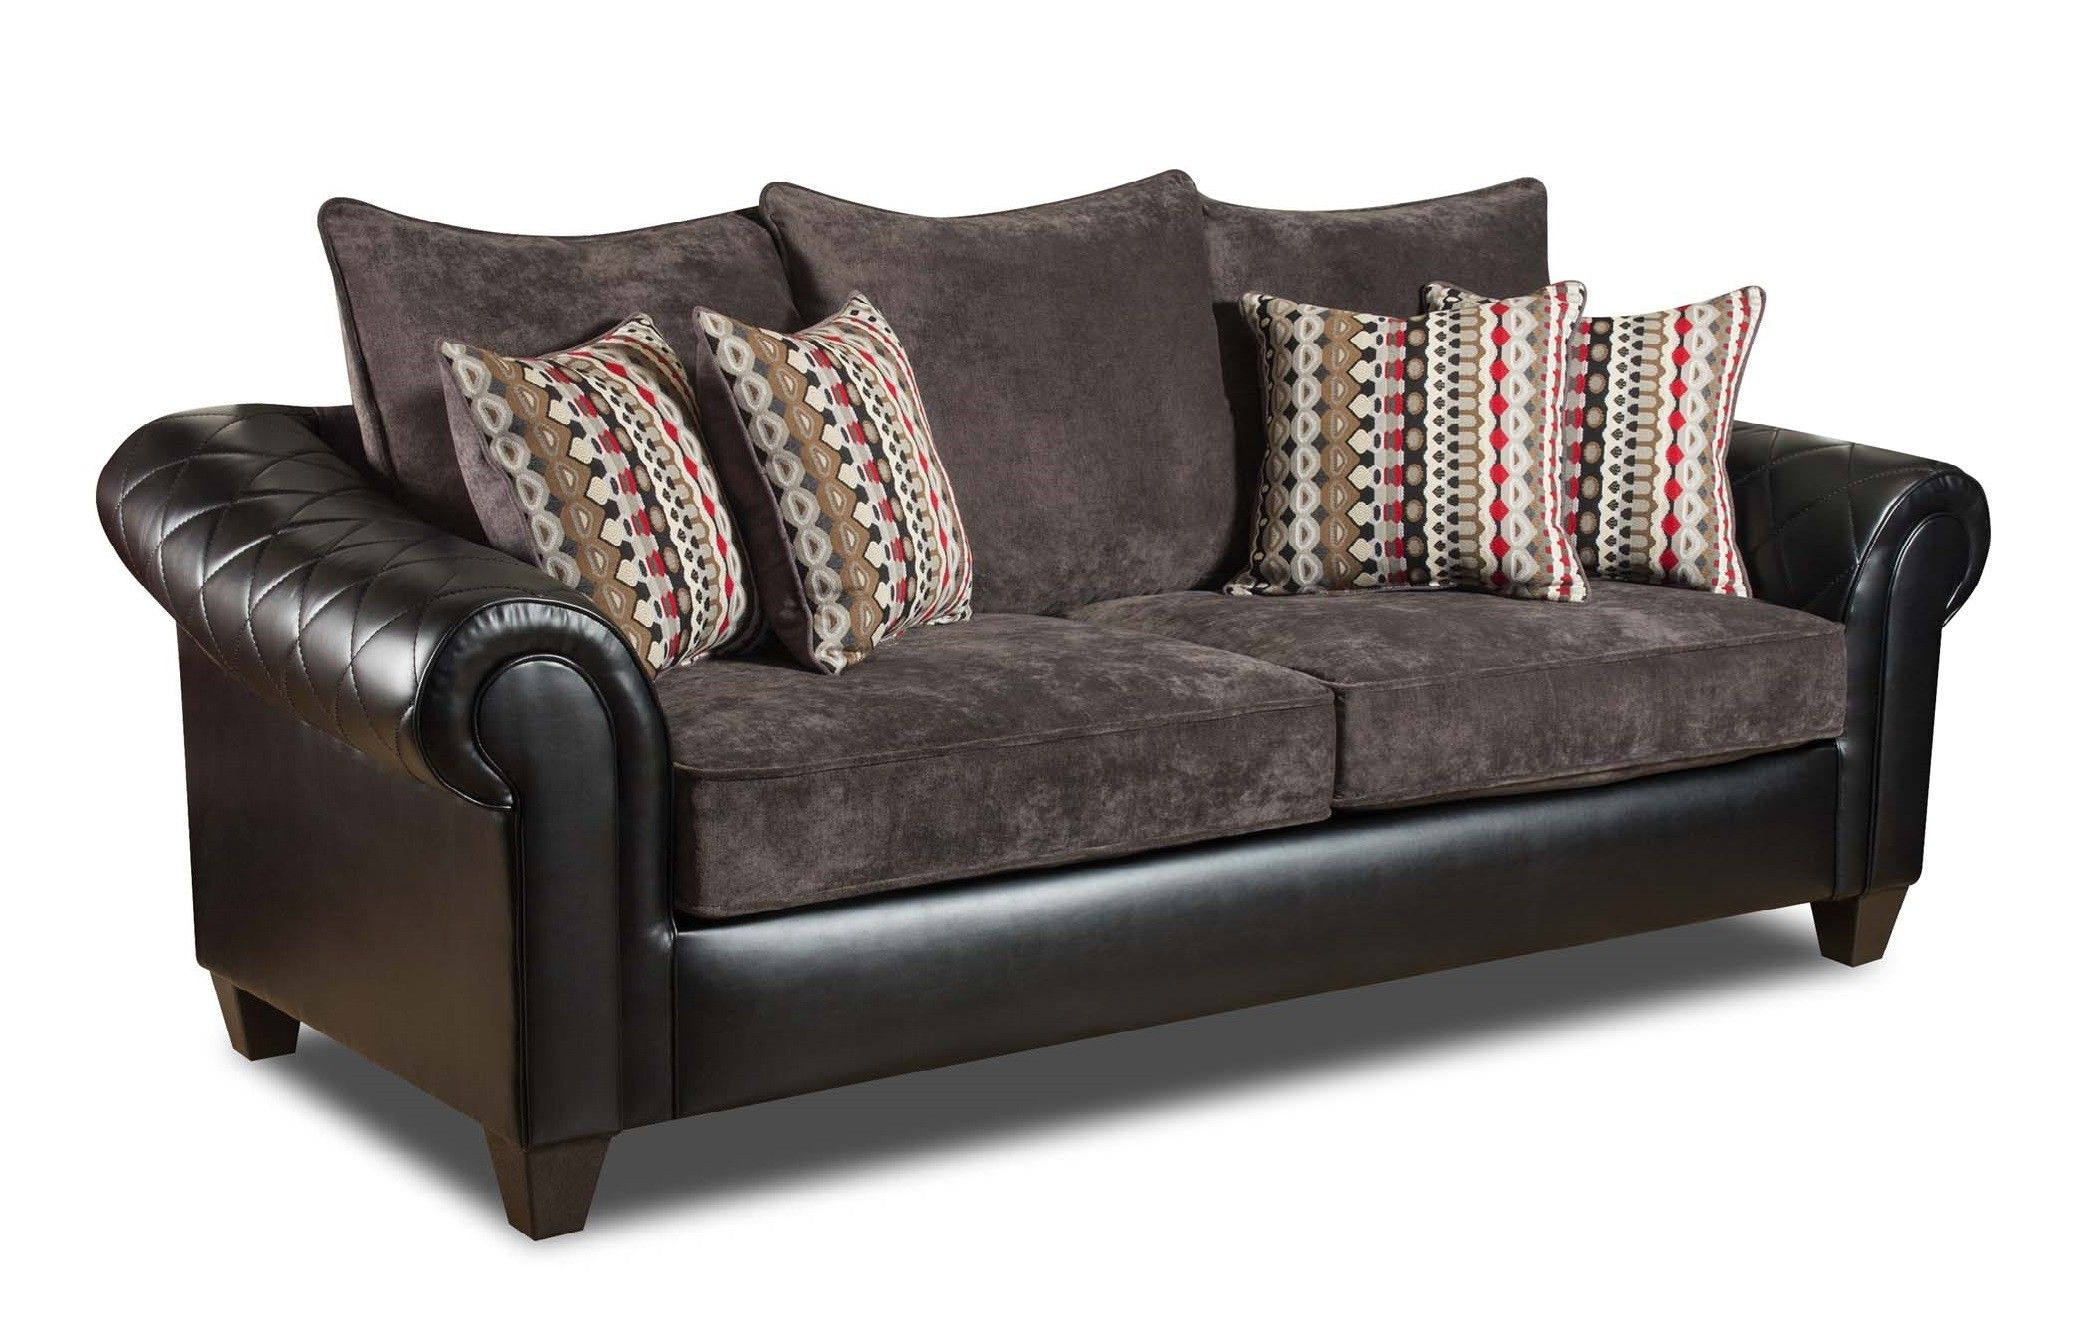 Afton Sofa in Ghana Black by Chelsea Home Furniture ...